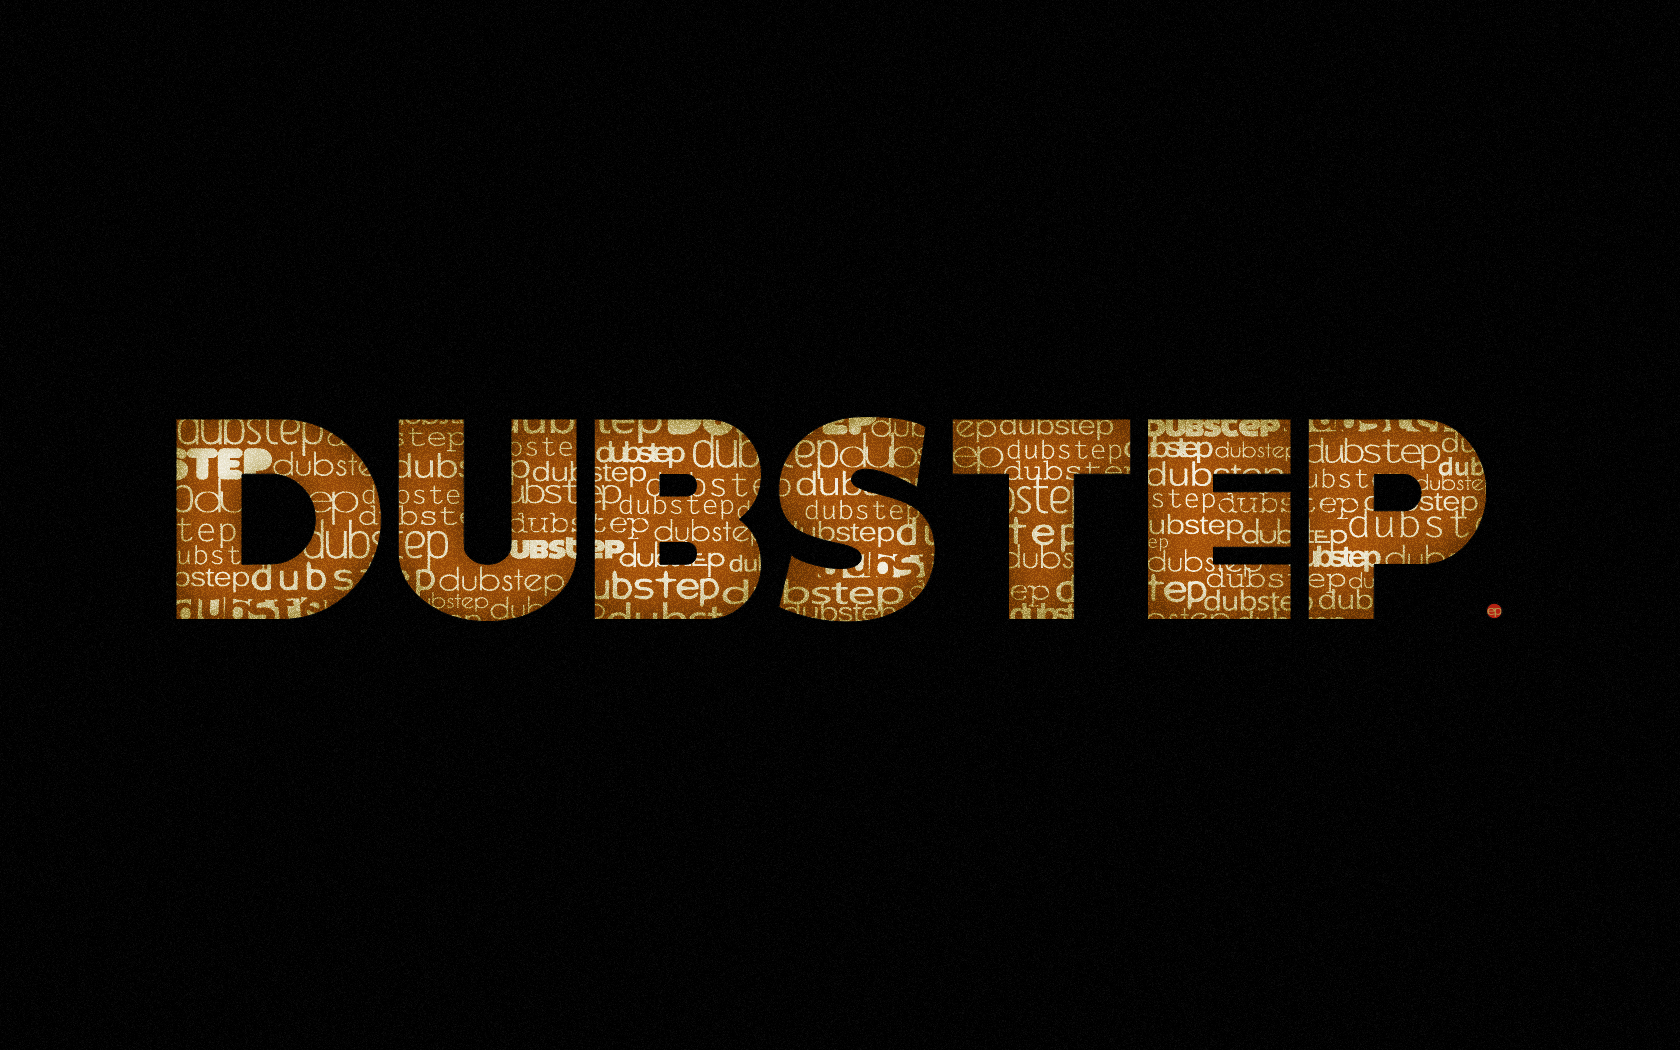 Music text dubstep awesome